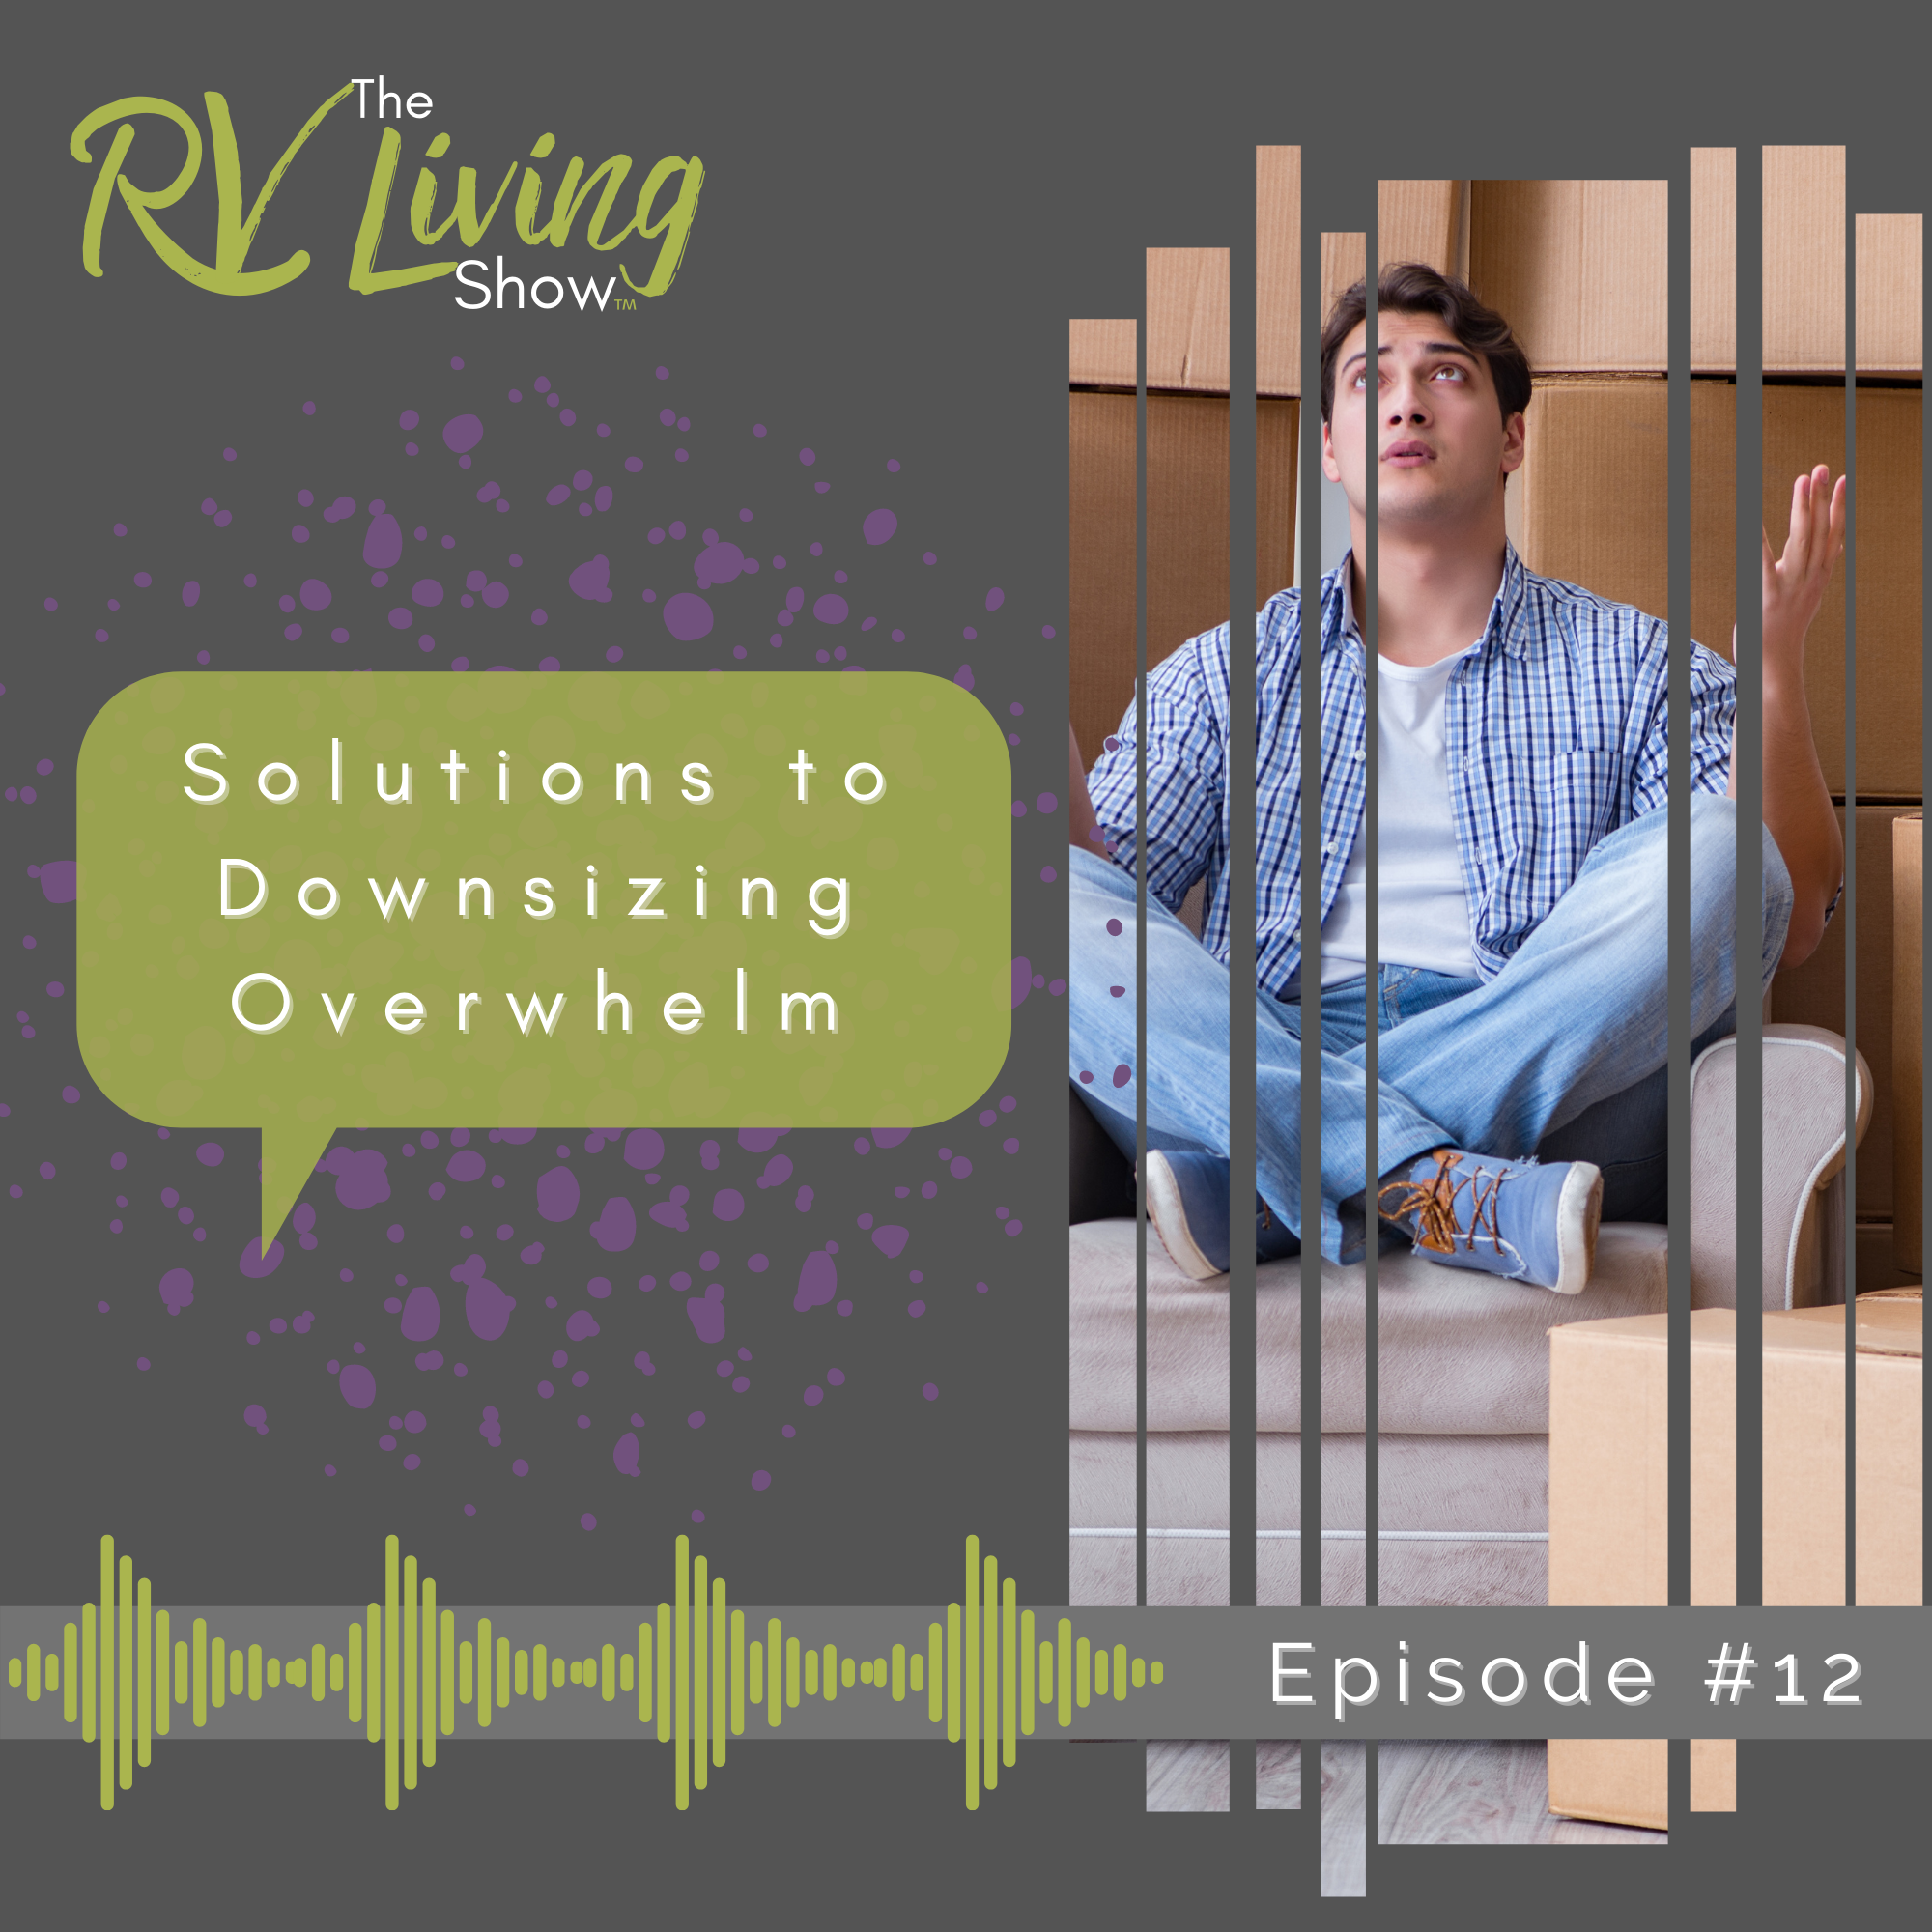 Solutions to Downsizing Overwhelm Episode 11